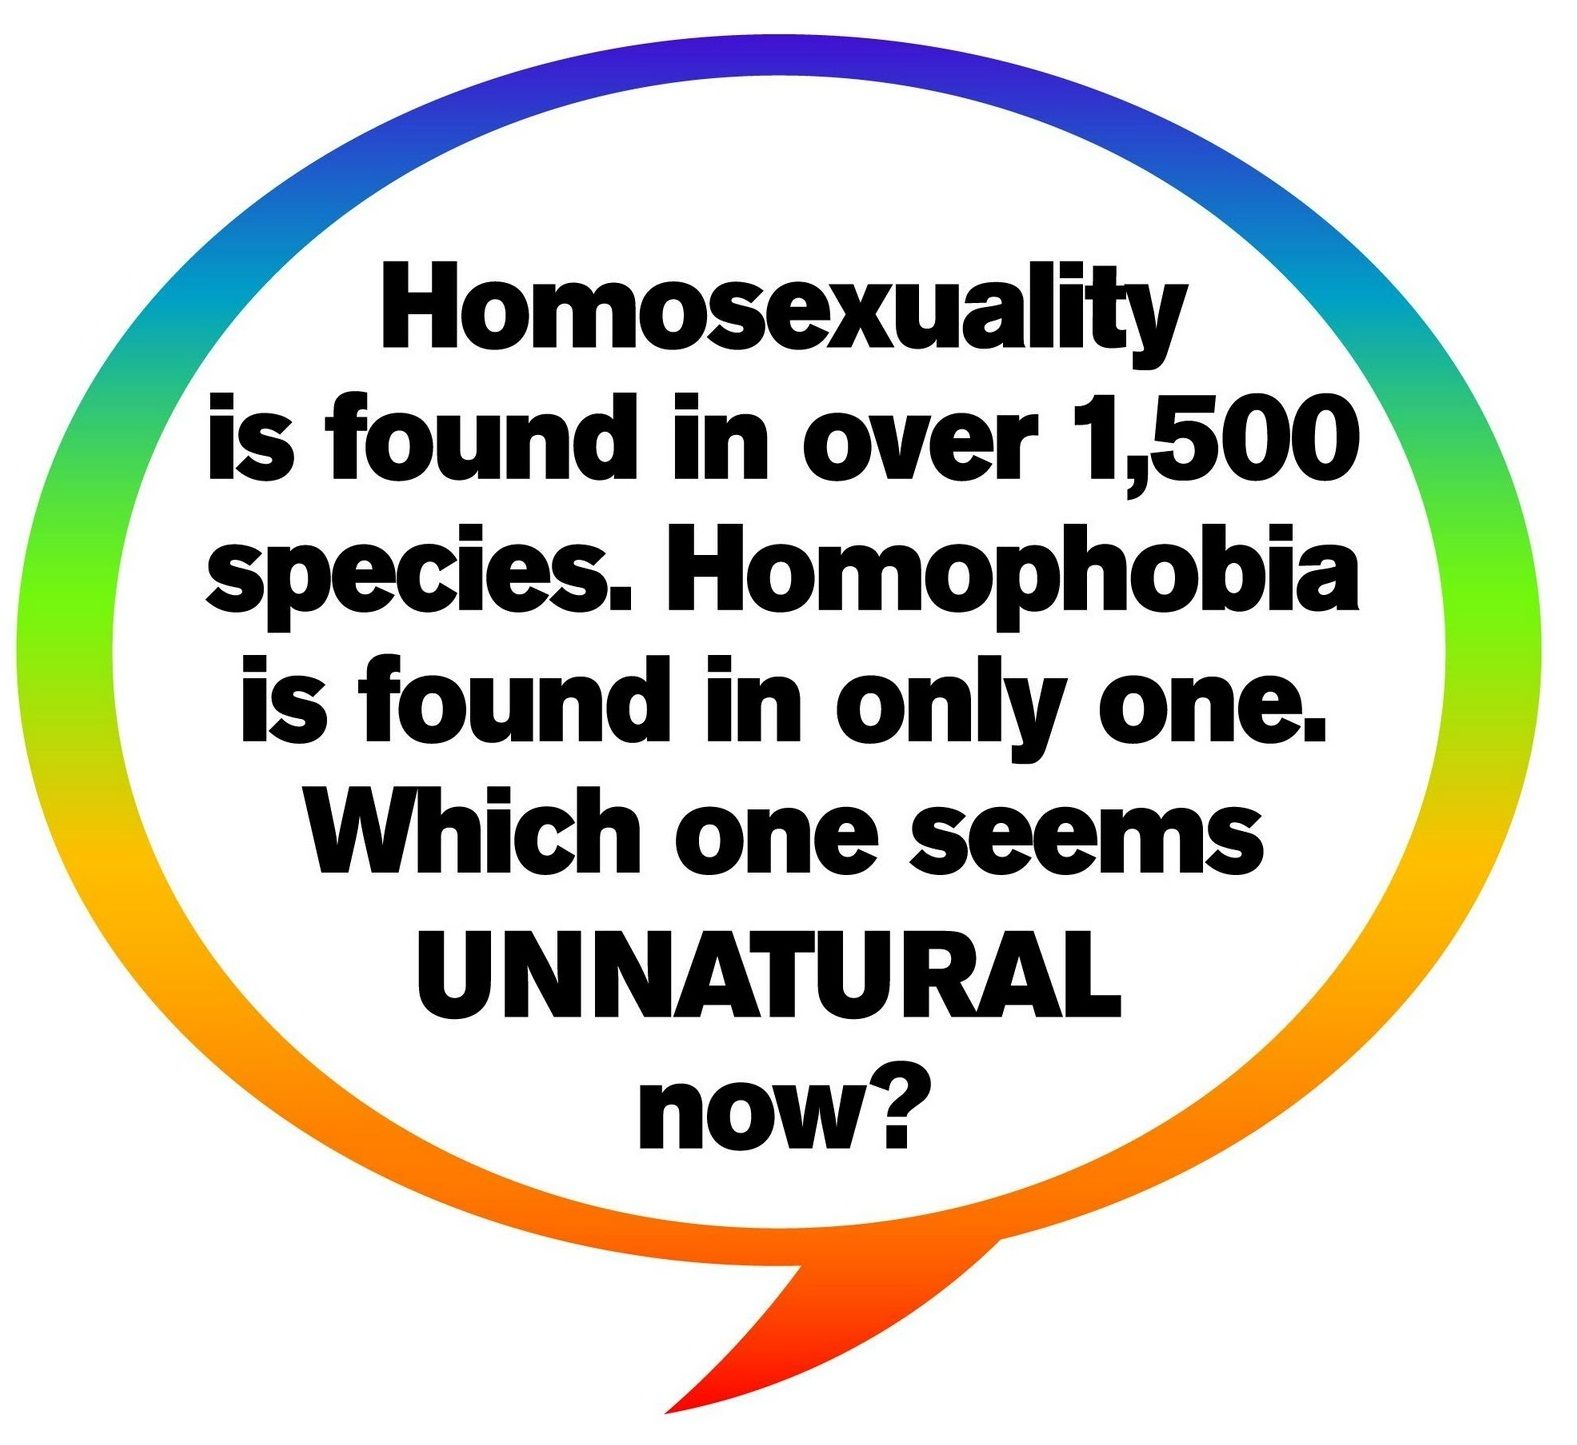 Homosexuality found in different species